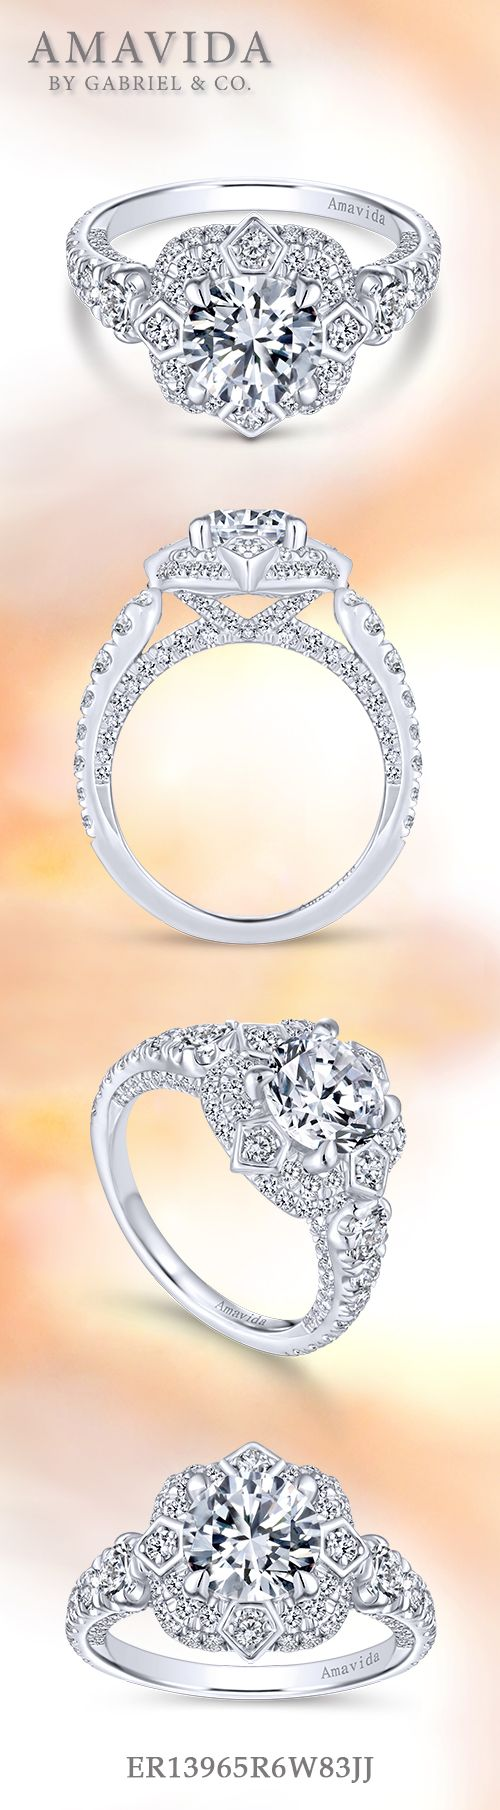 Art Deco 18K White Gold Fancy Double Halo Round Diamond Engagement Ring